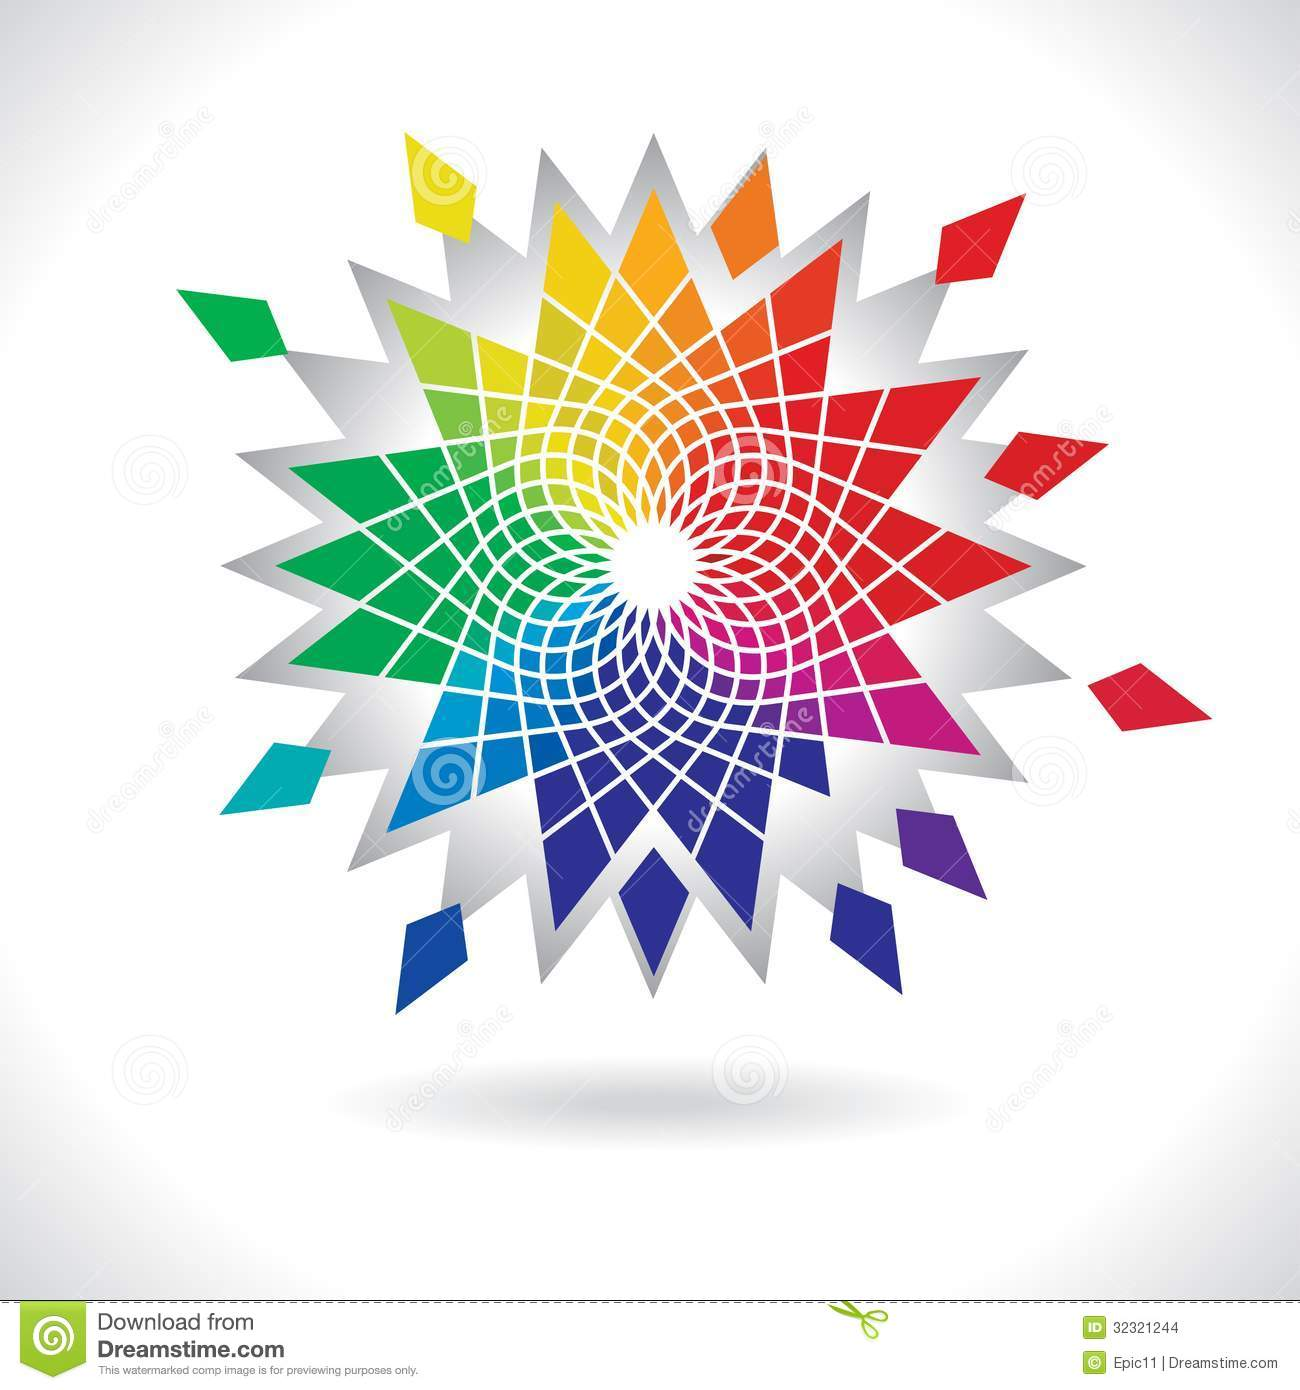 Abstract Flower Background With Decoration Elements For: Circle Colorful Elements Stock Vector. Illustration Of